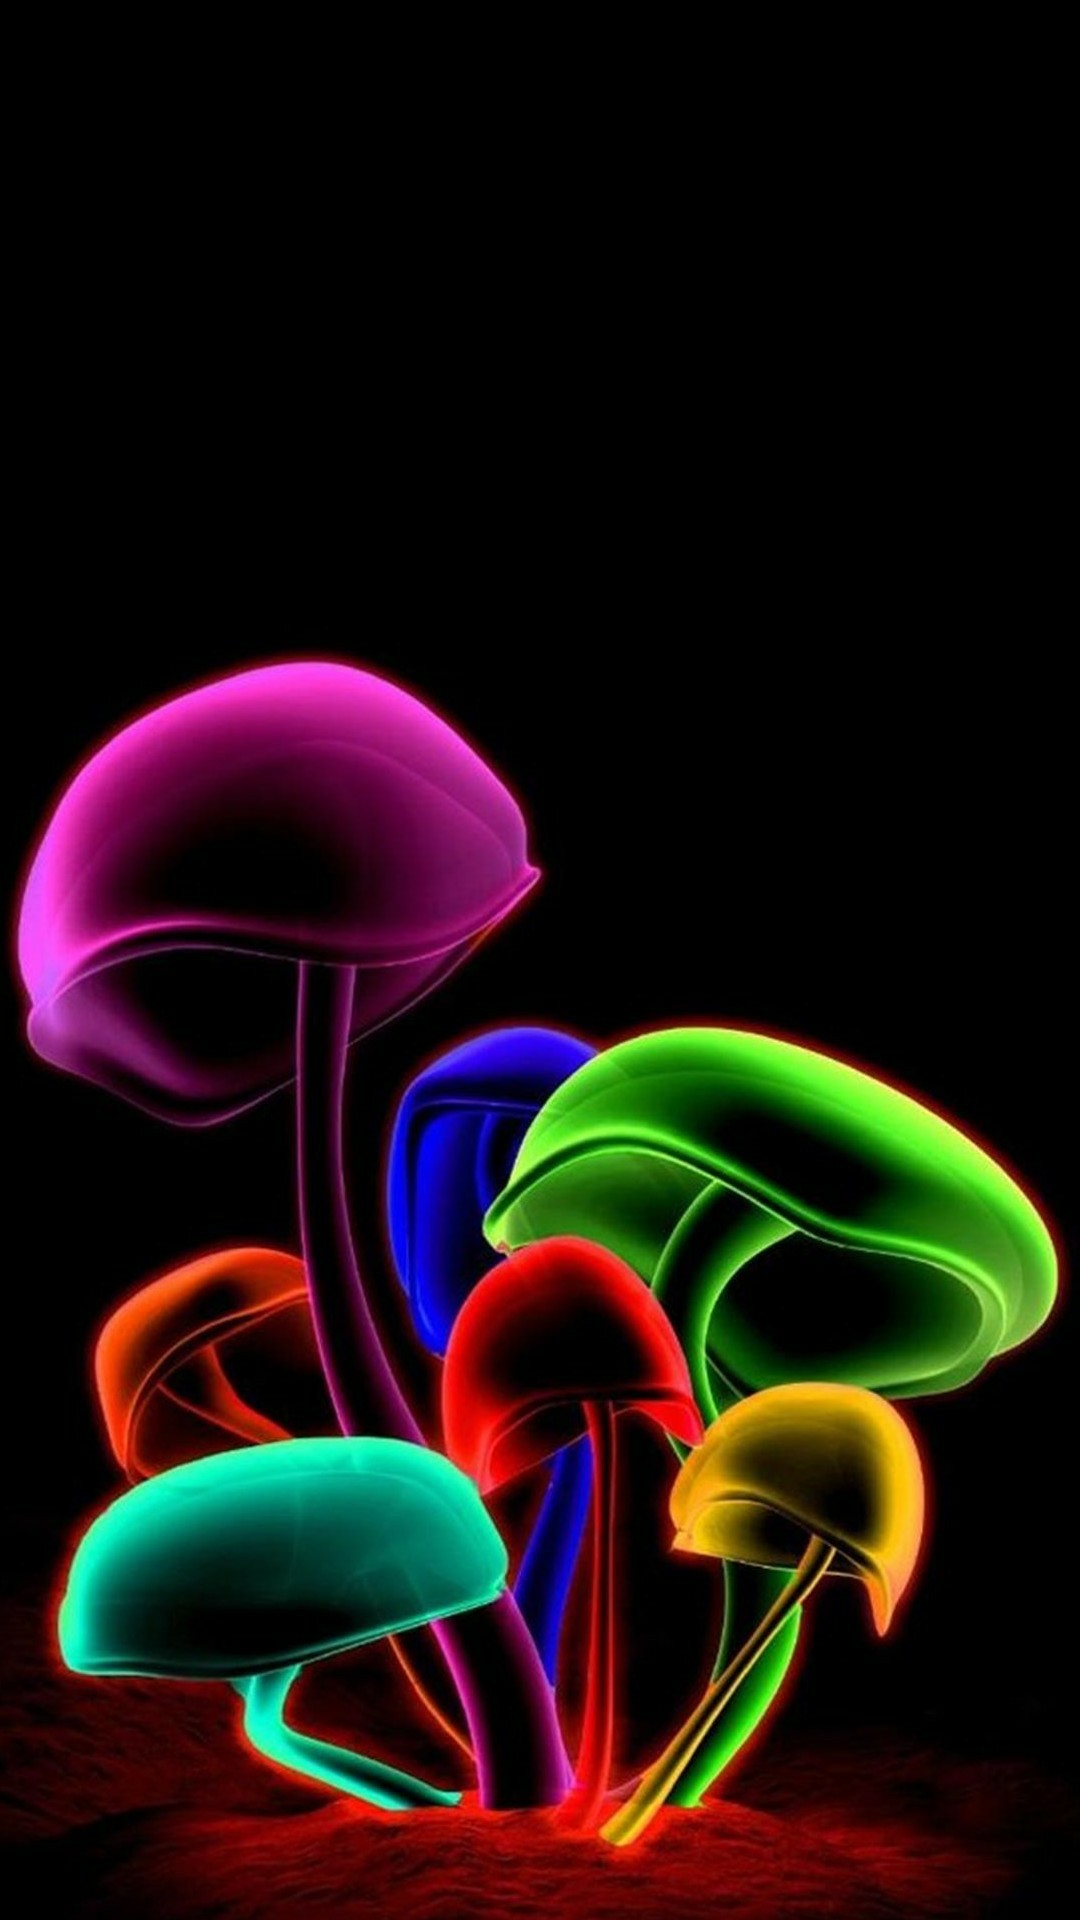 HD Wallpapers For Mobile 76 Background Pictures